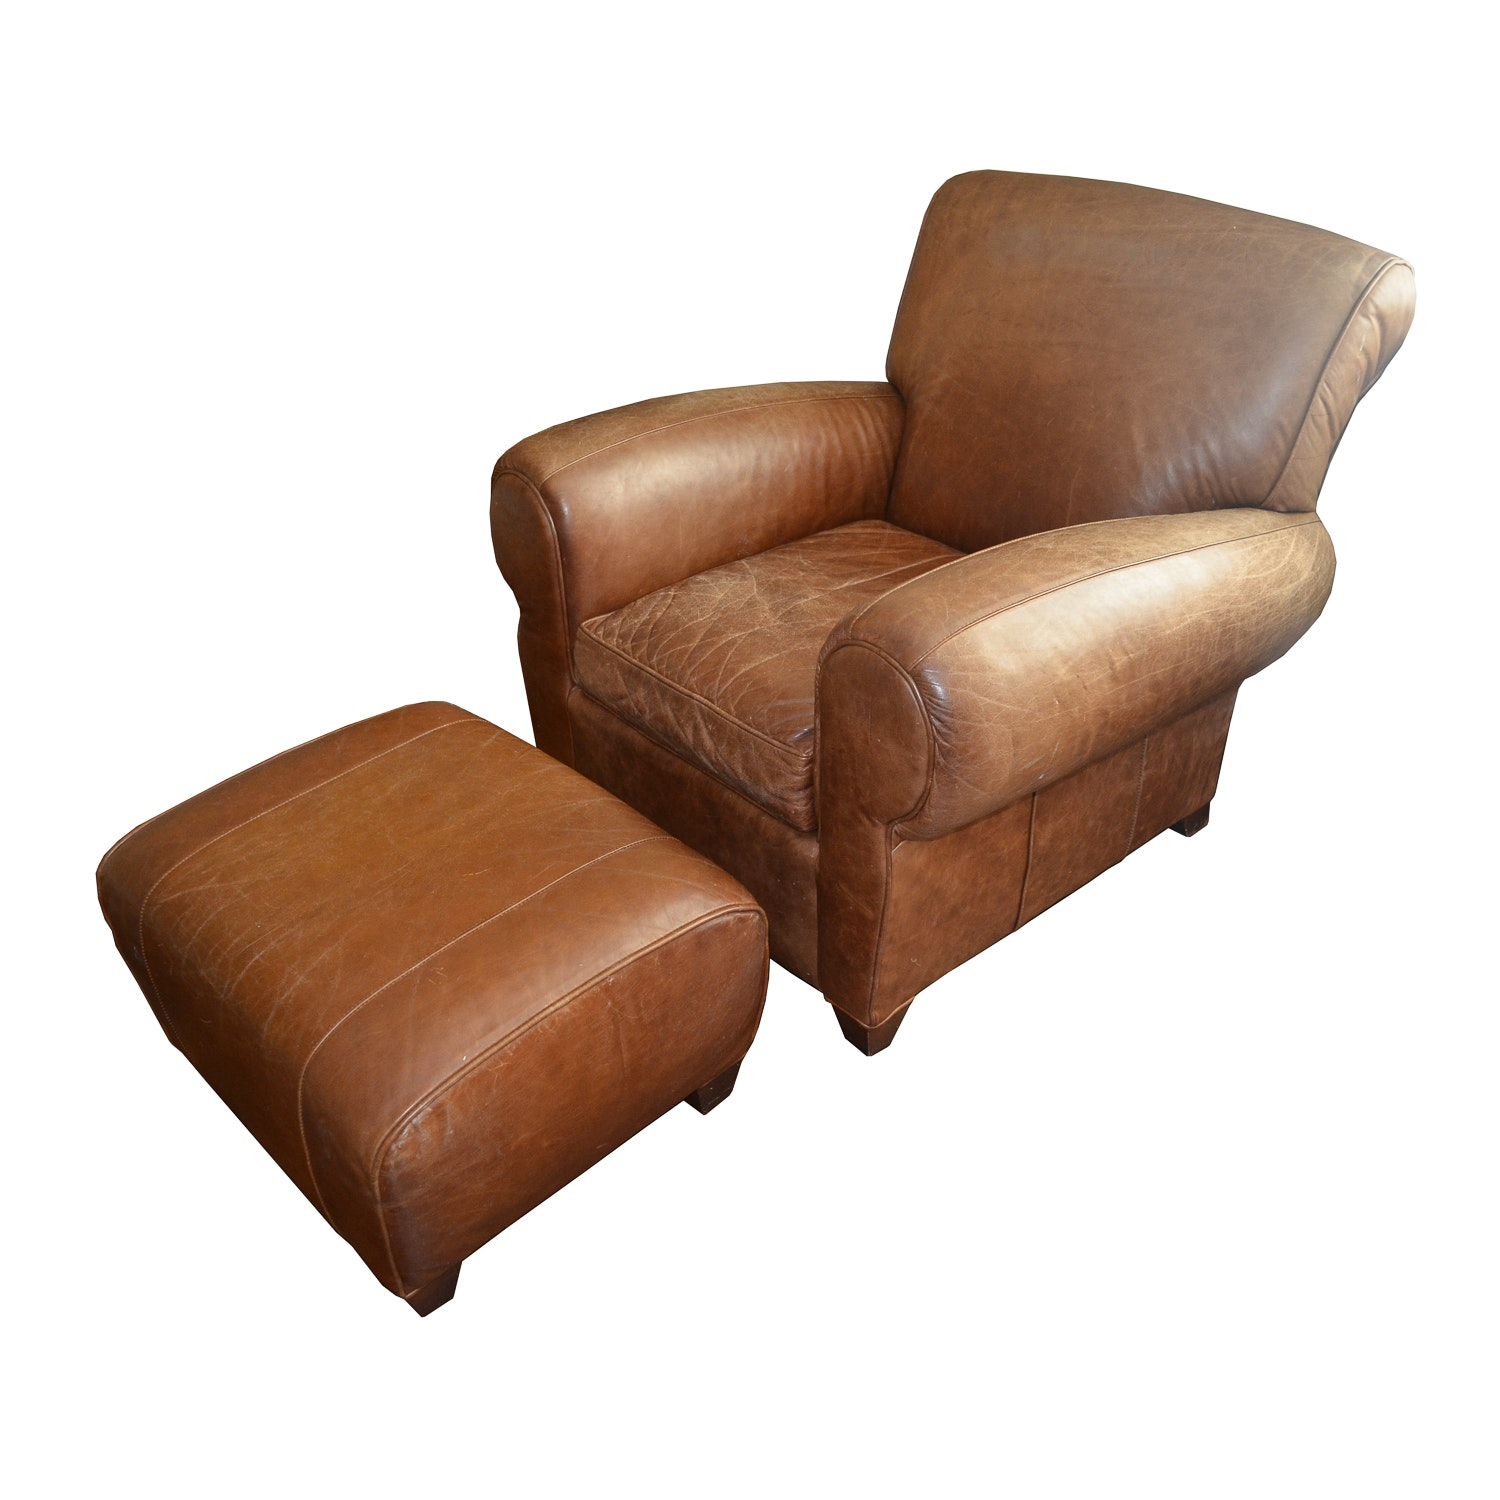 Ordinaire Pottery Barn By Mitchell Gold Leather Chair With Ottoman ...